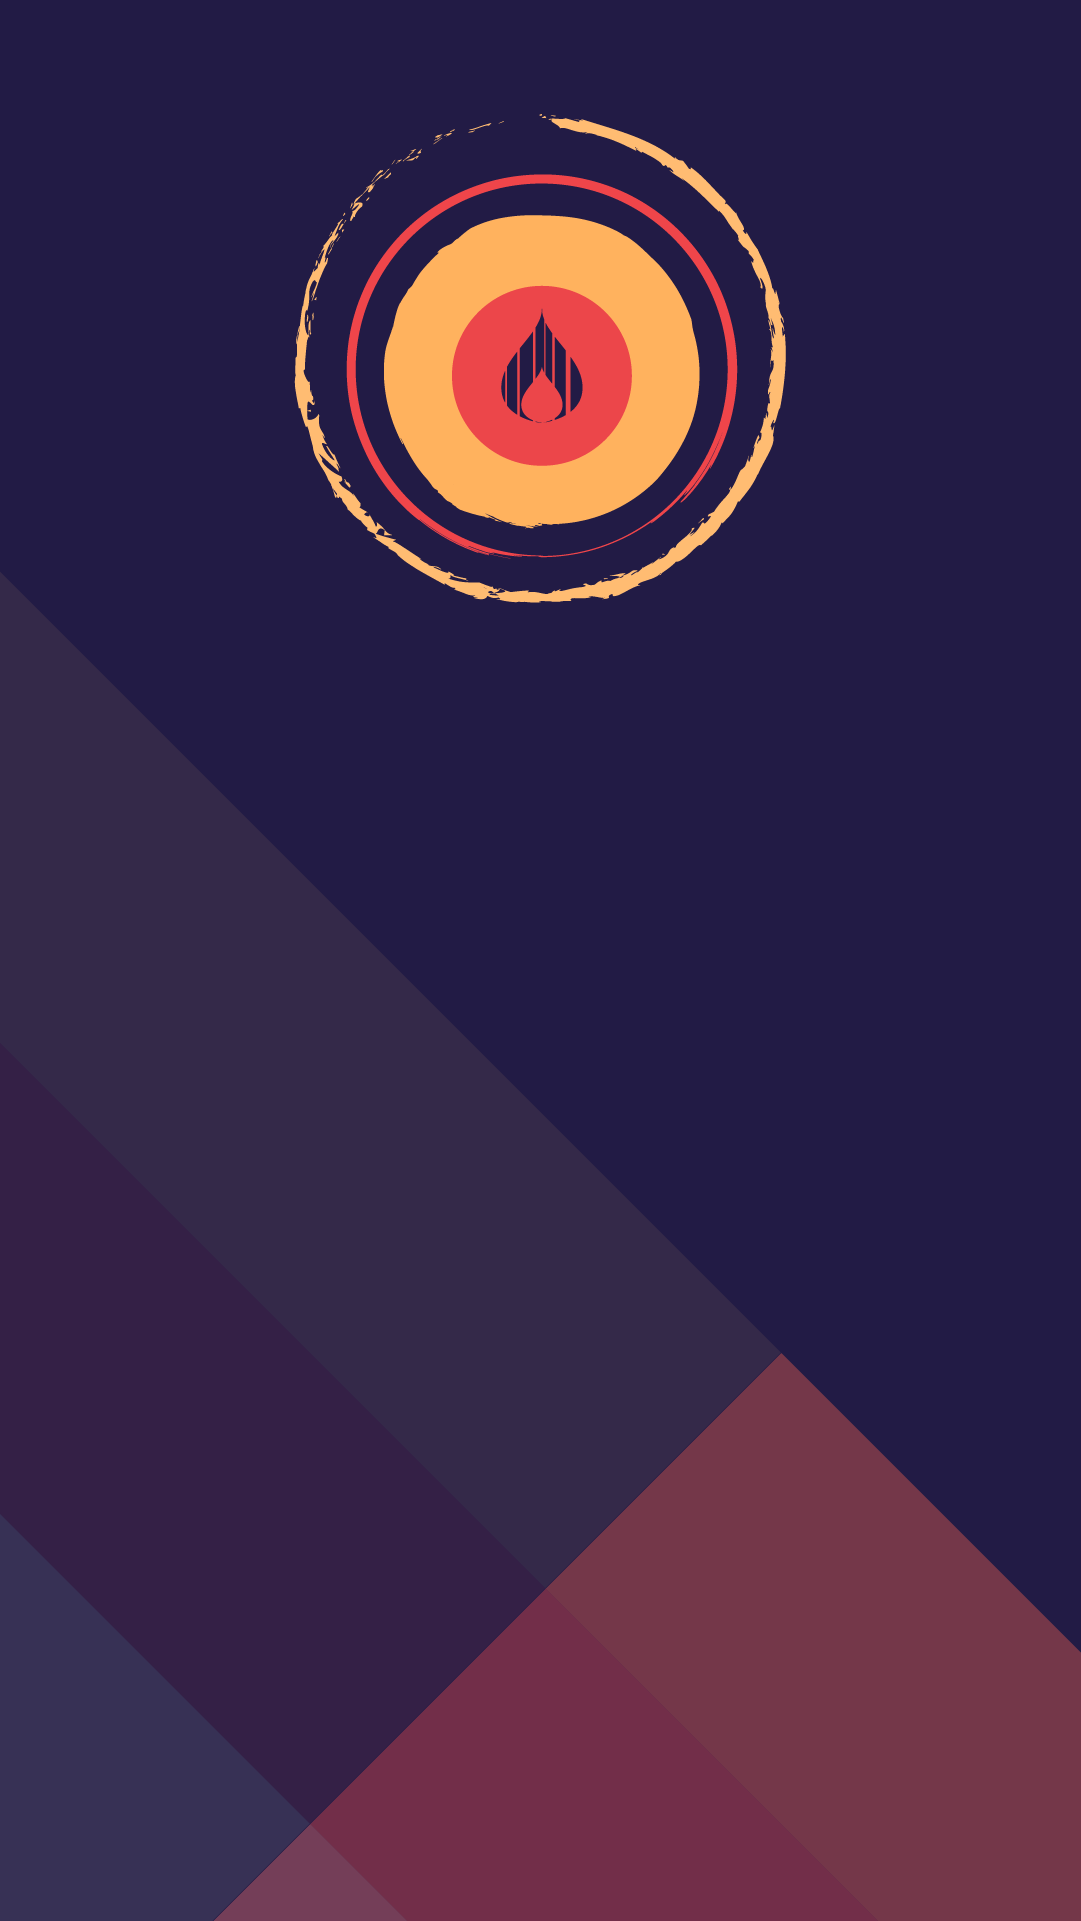 Destiny Emblems Phone Backgrounds Album On Imgur Destiny Game Destiny Bungie Destiny